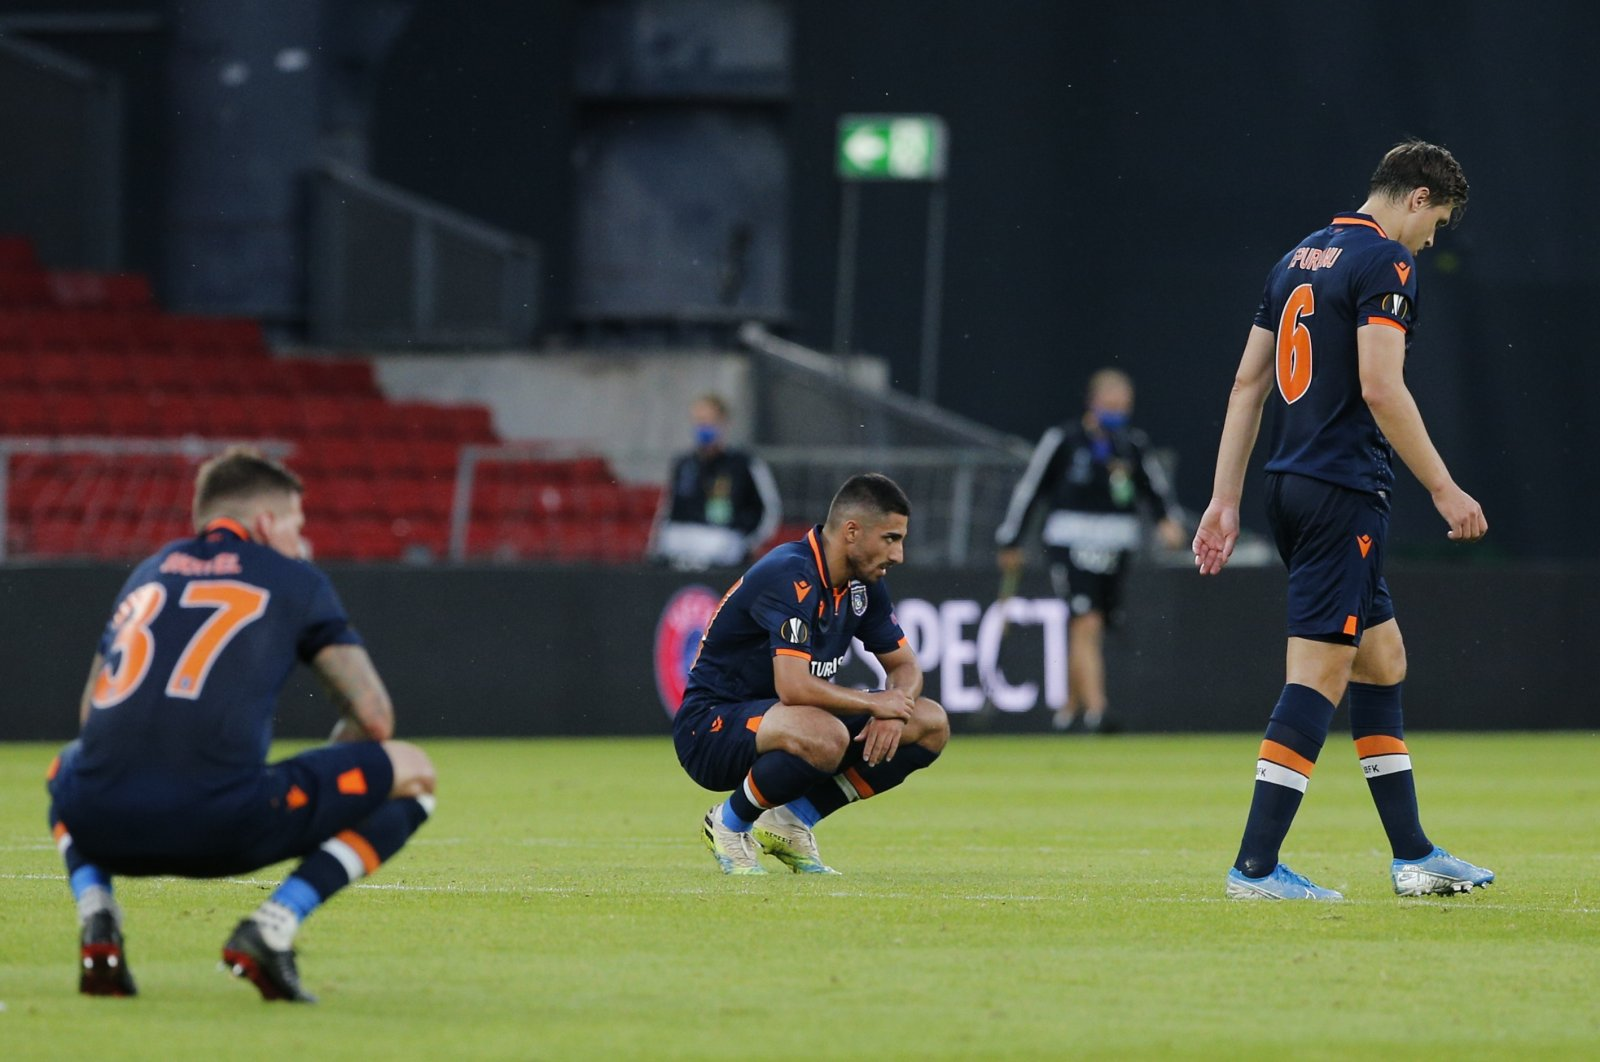 Başakşehir players linger on the field after the match with Copenhagen in the Danish capital, Aug 5, 2020. (AA Photo)